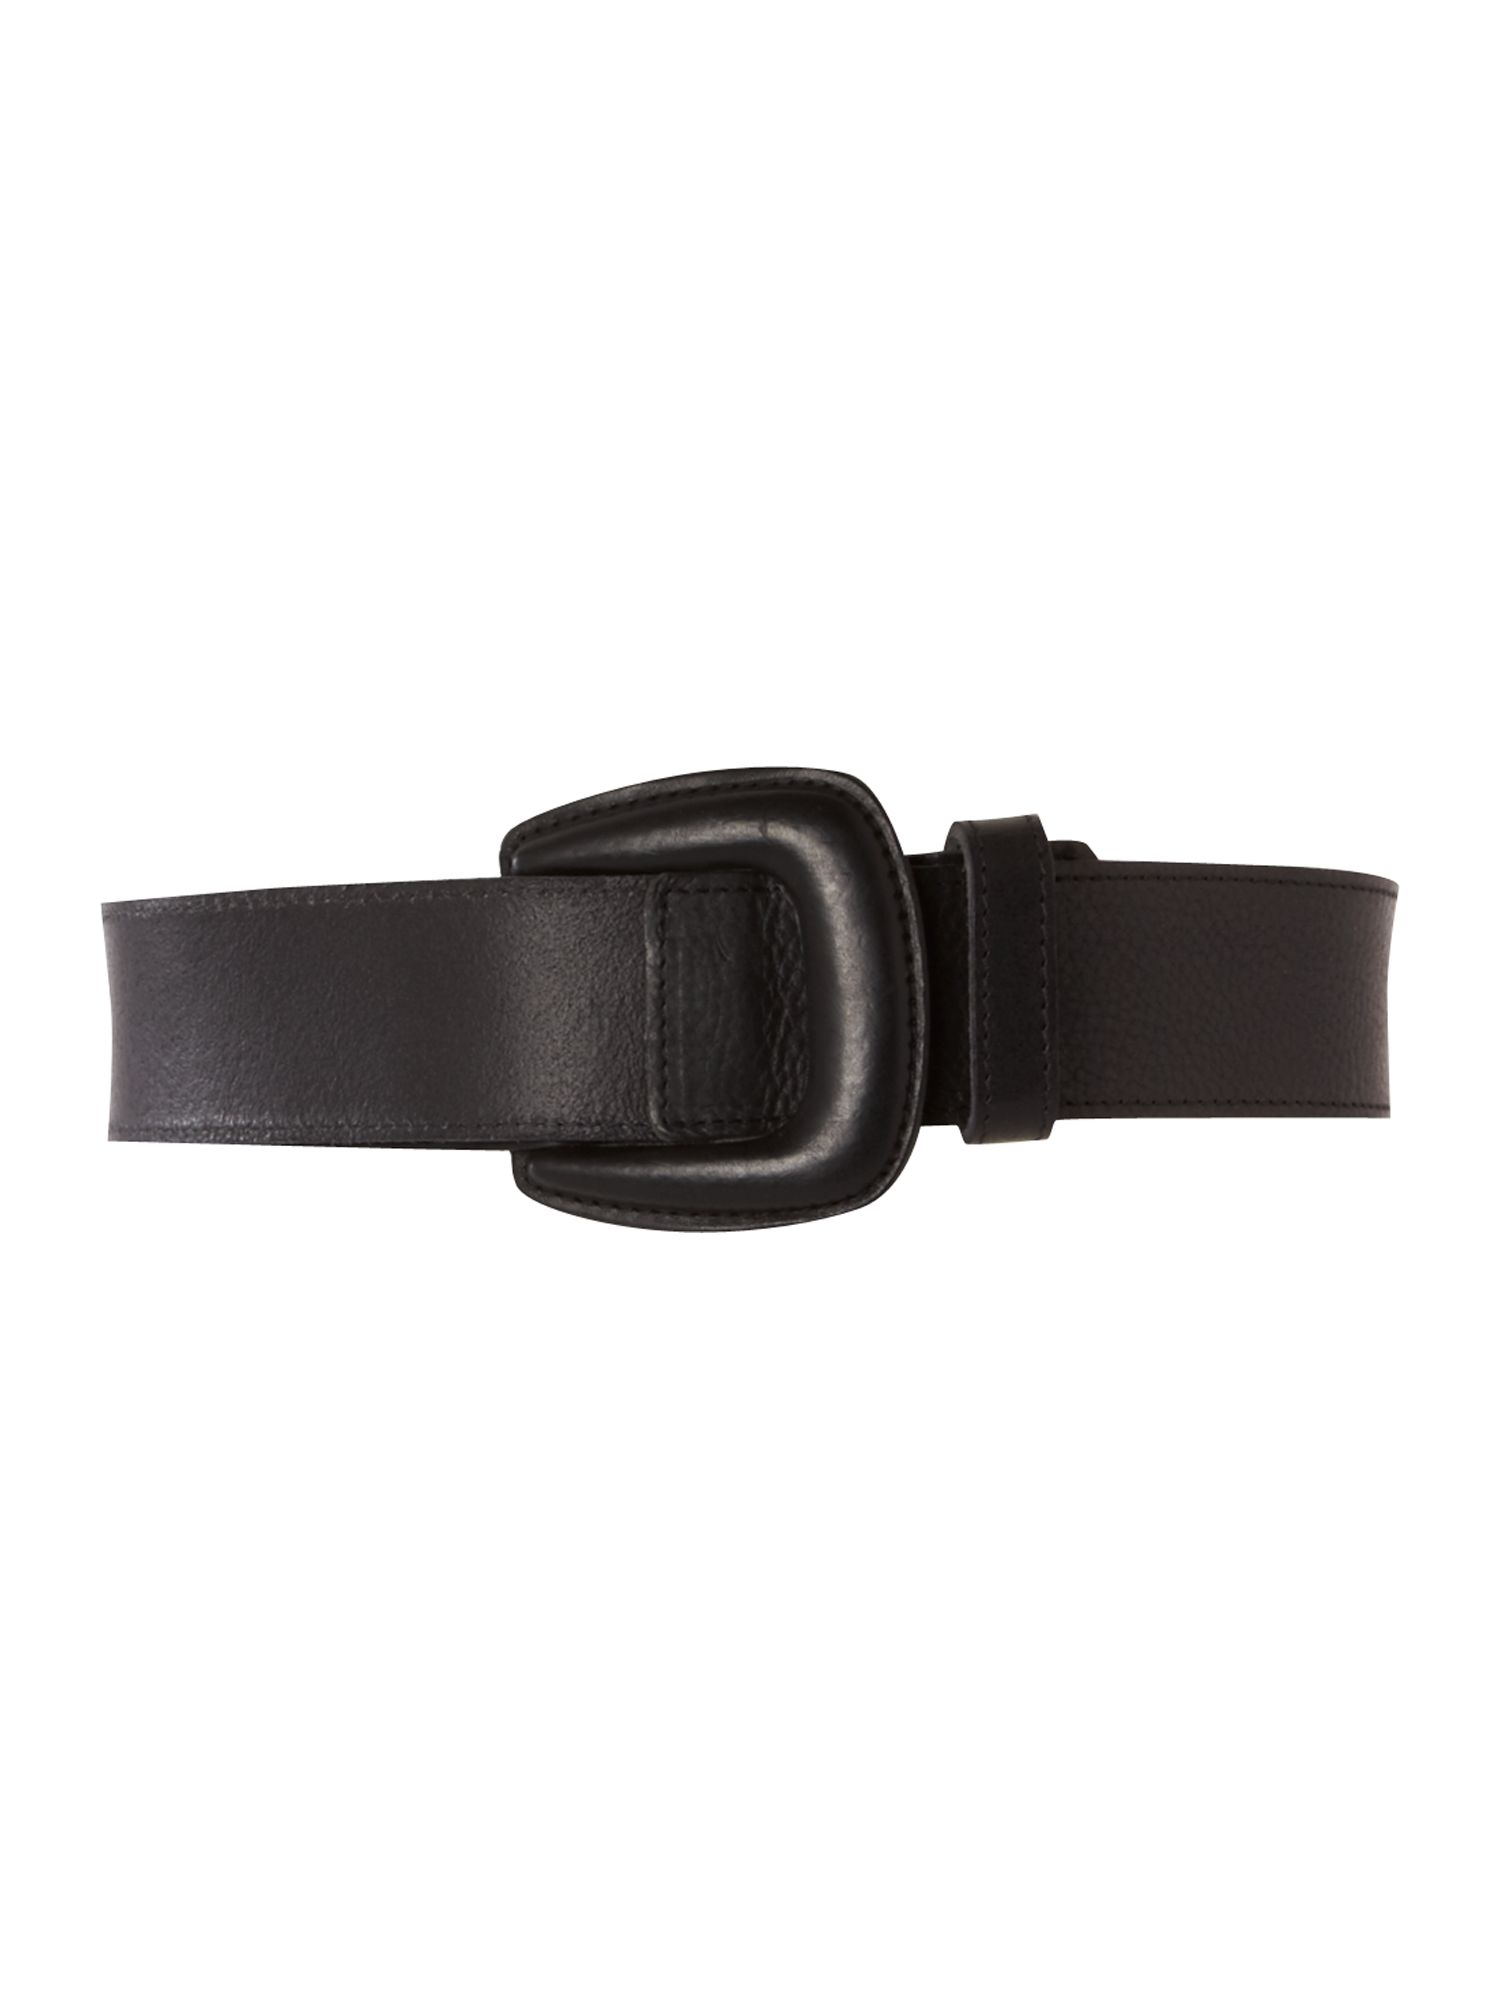 Lamant black buckle hip belt